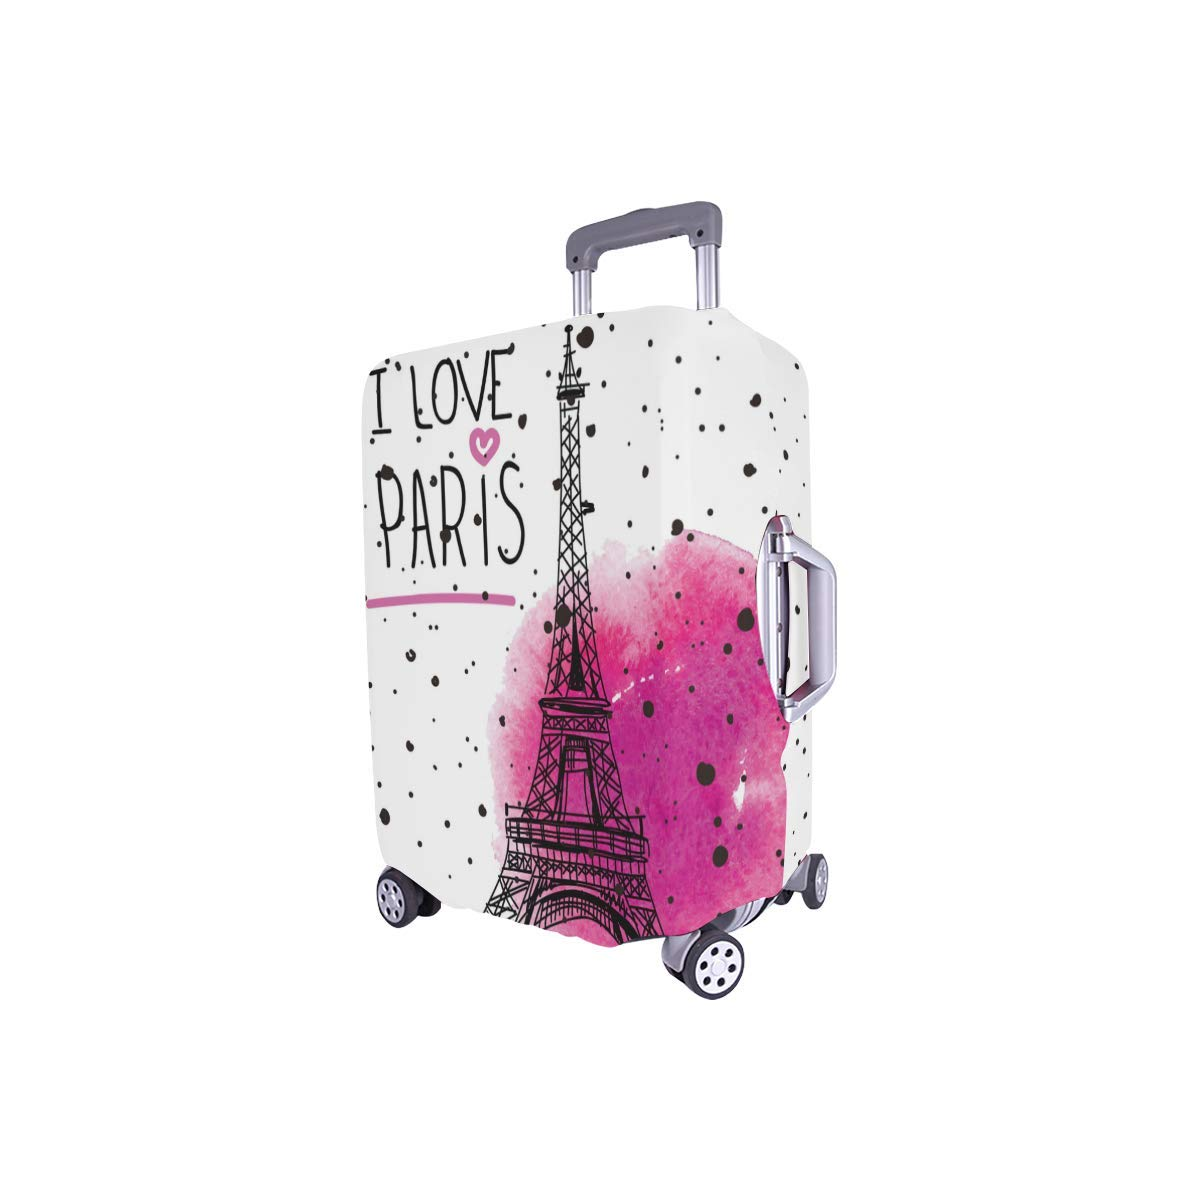 InterestPrint I Love Paris Eiffel Tower Travel Luggage Case Baggage Suitcase Cover Fits 18''-21'' Luggage by InterestPrint (Image #3)